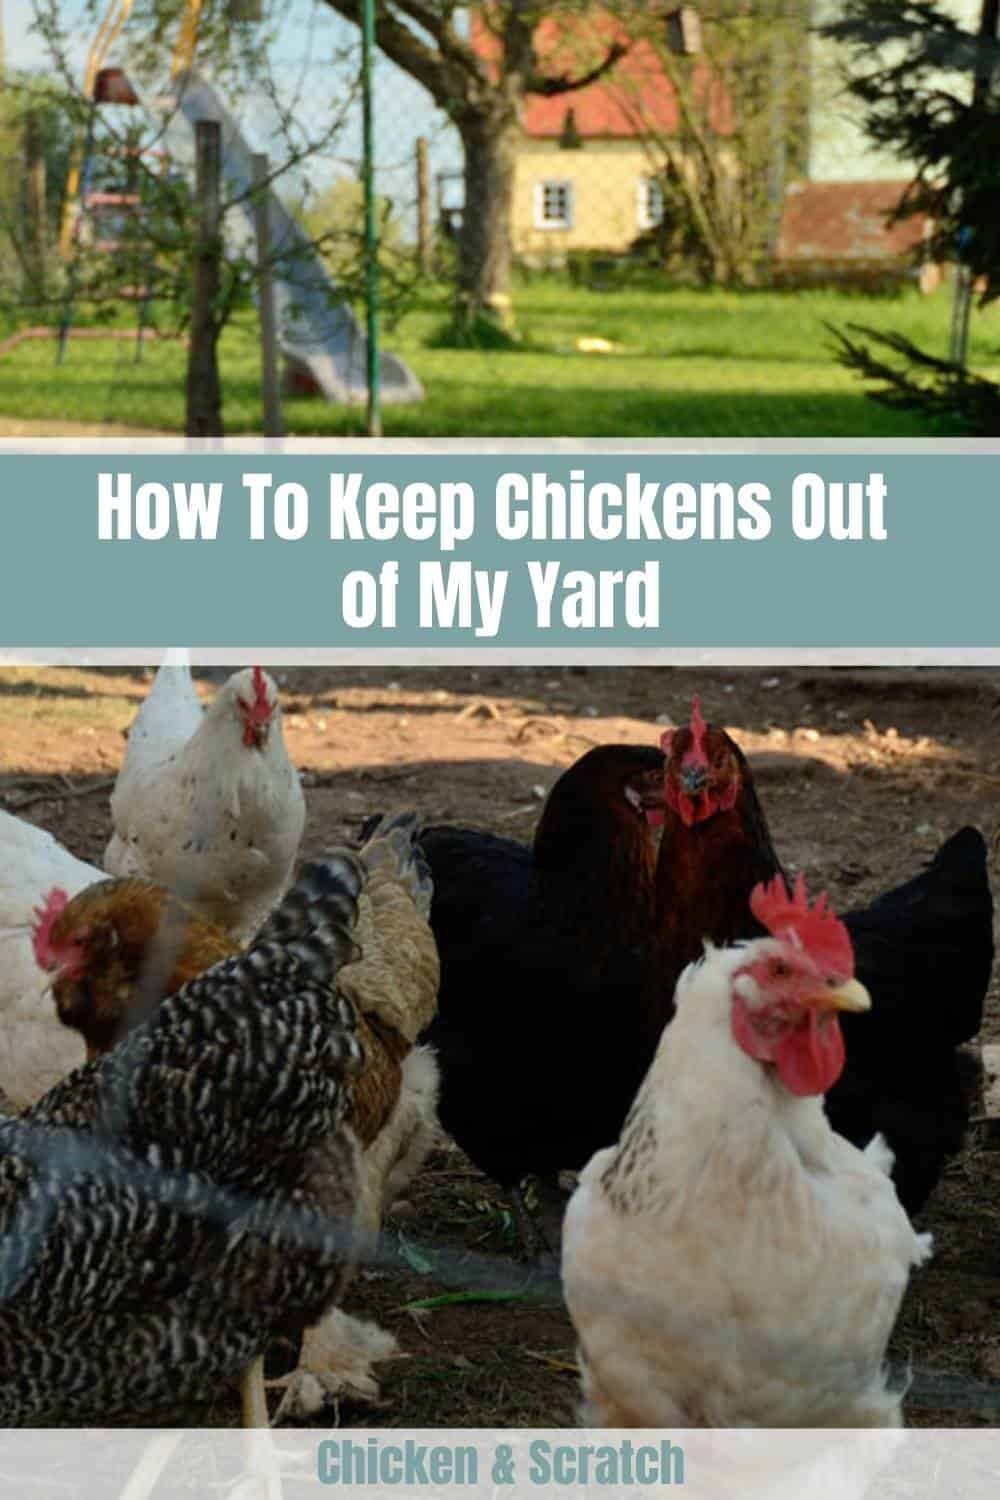 Keep Chickens Out of My Yard